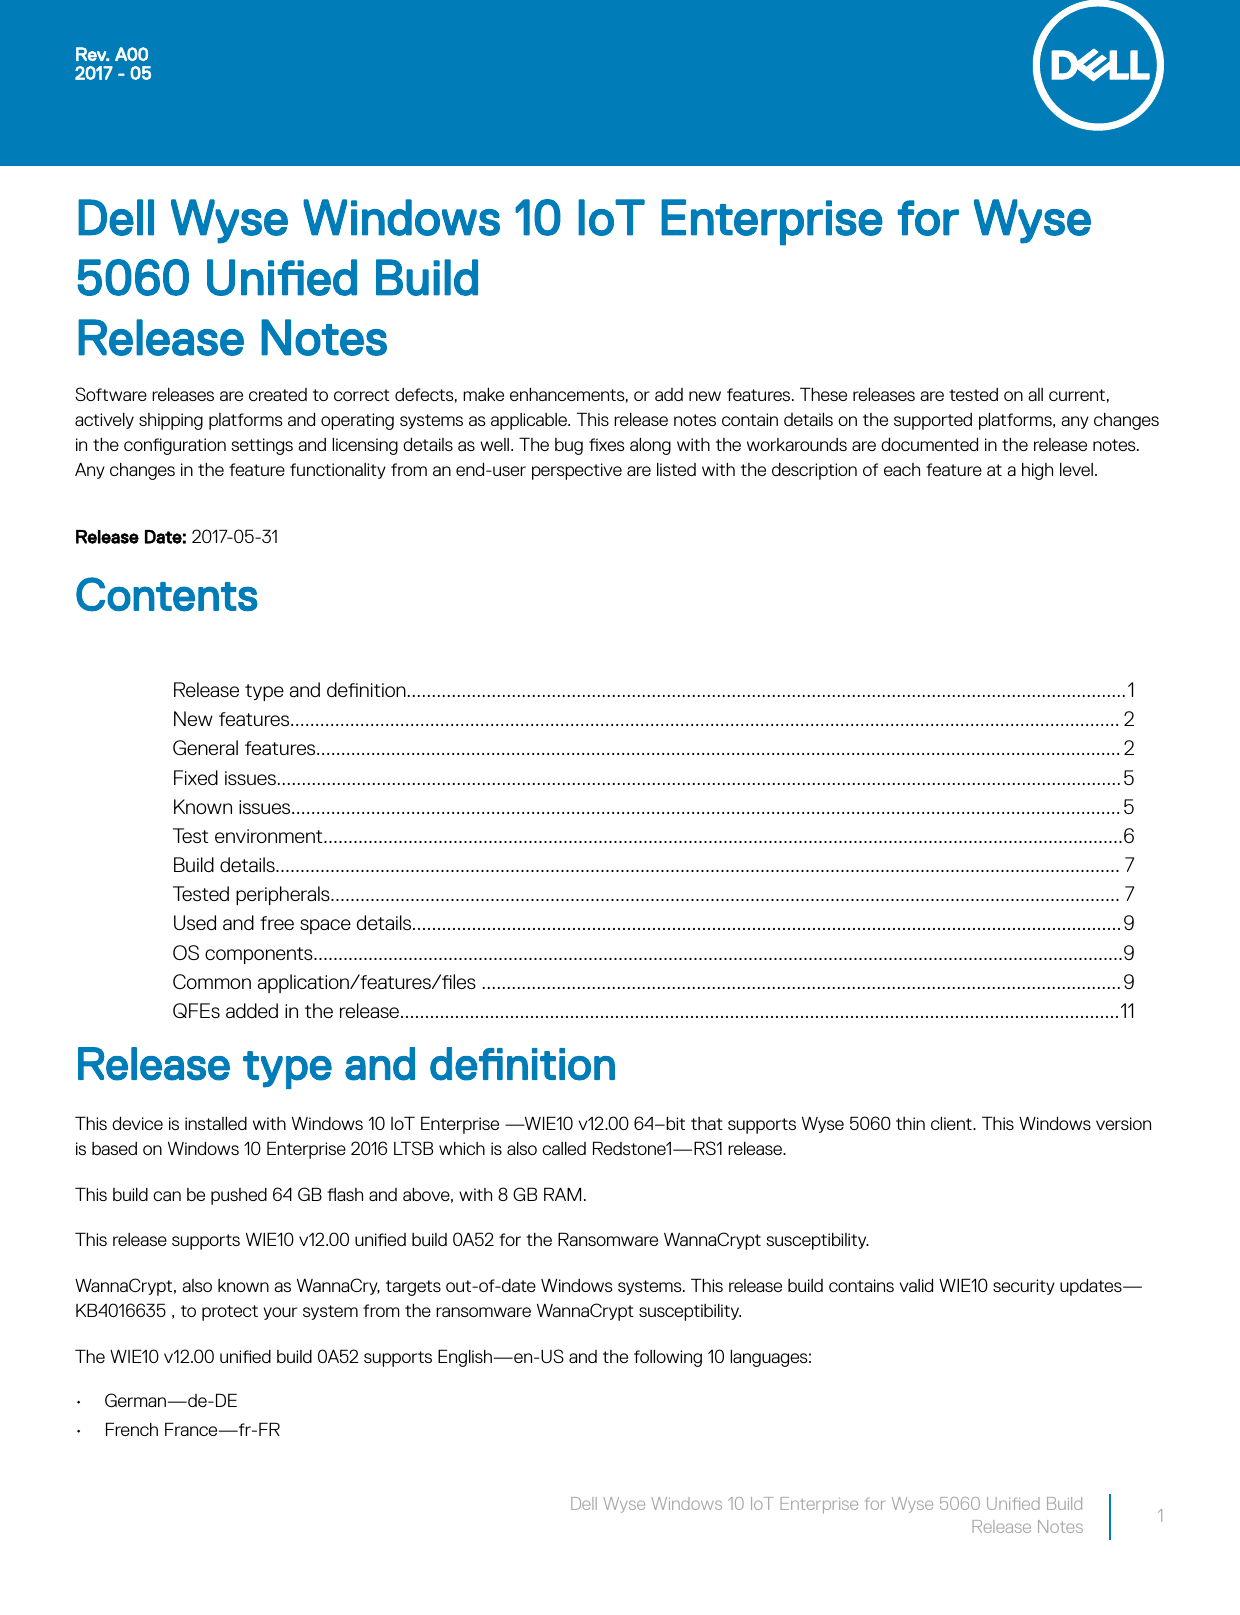 Dell Wyse 5060 thin client Windows 10 IoT Enterprise For